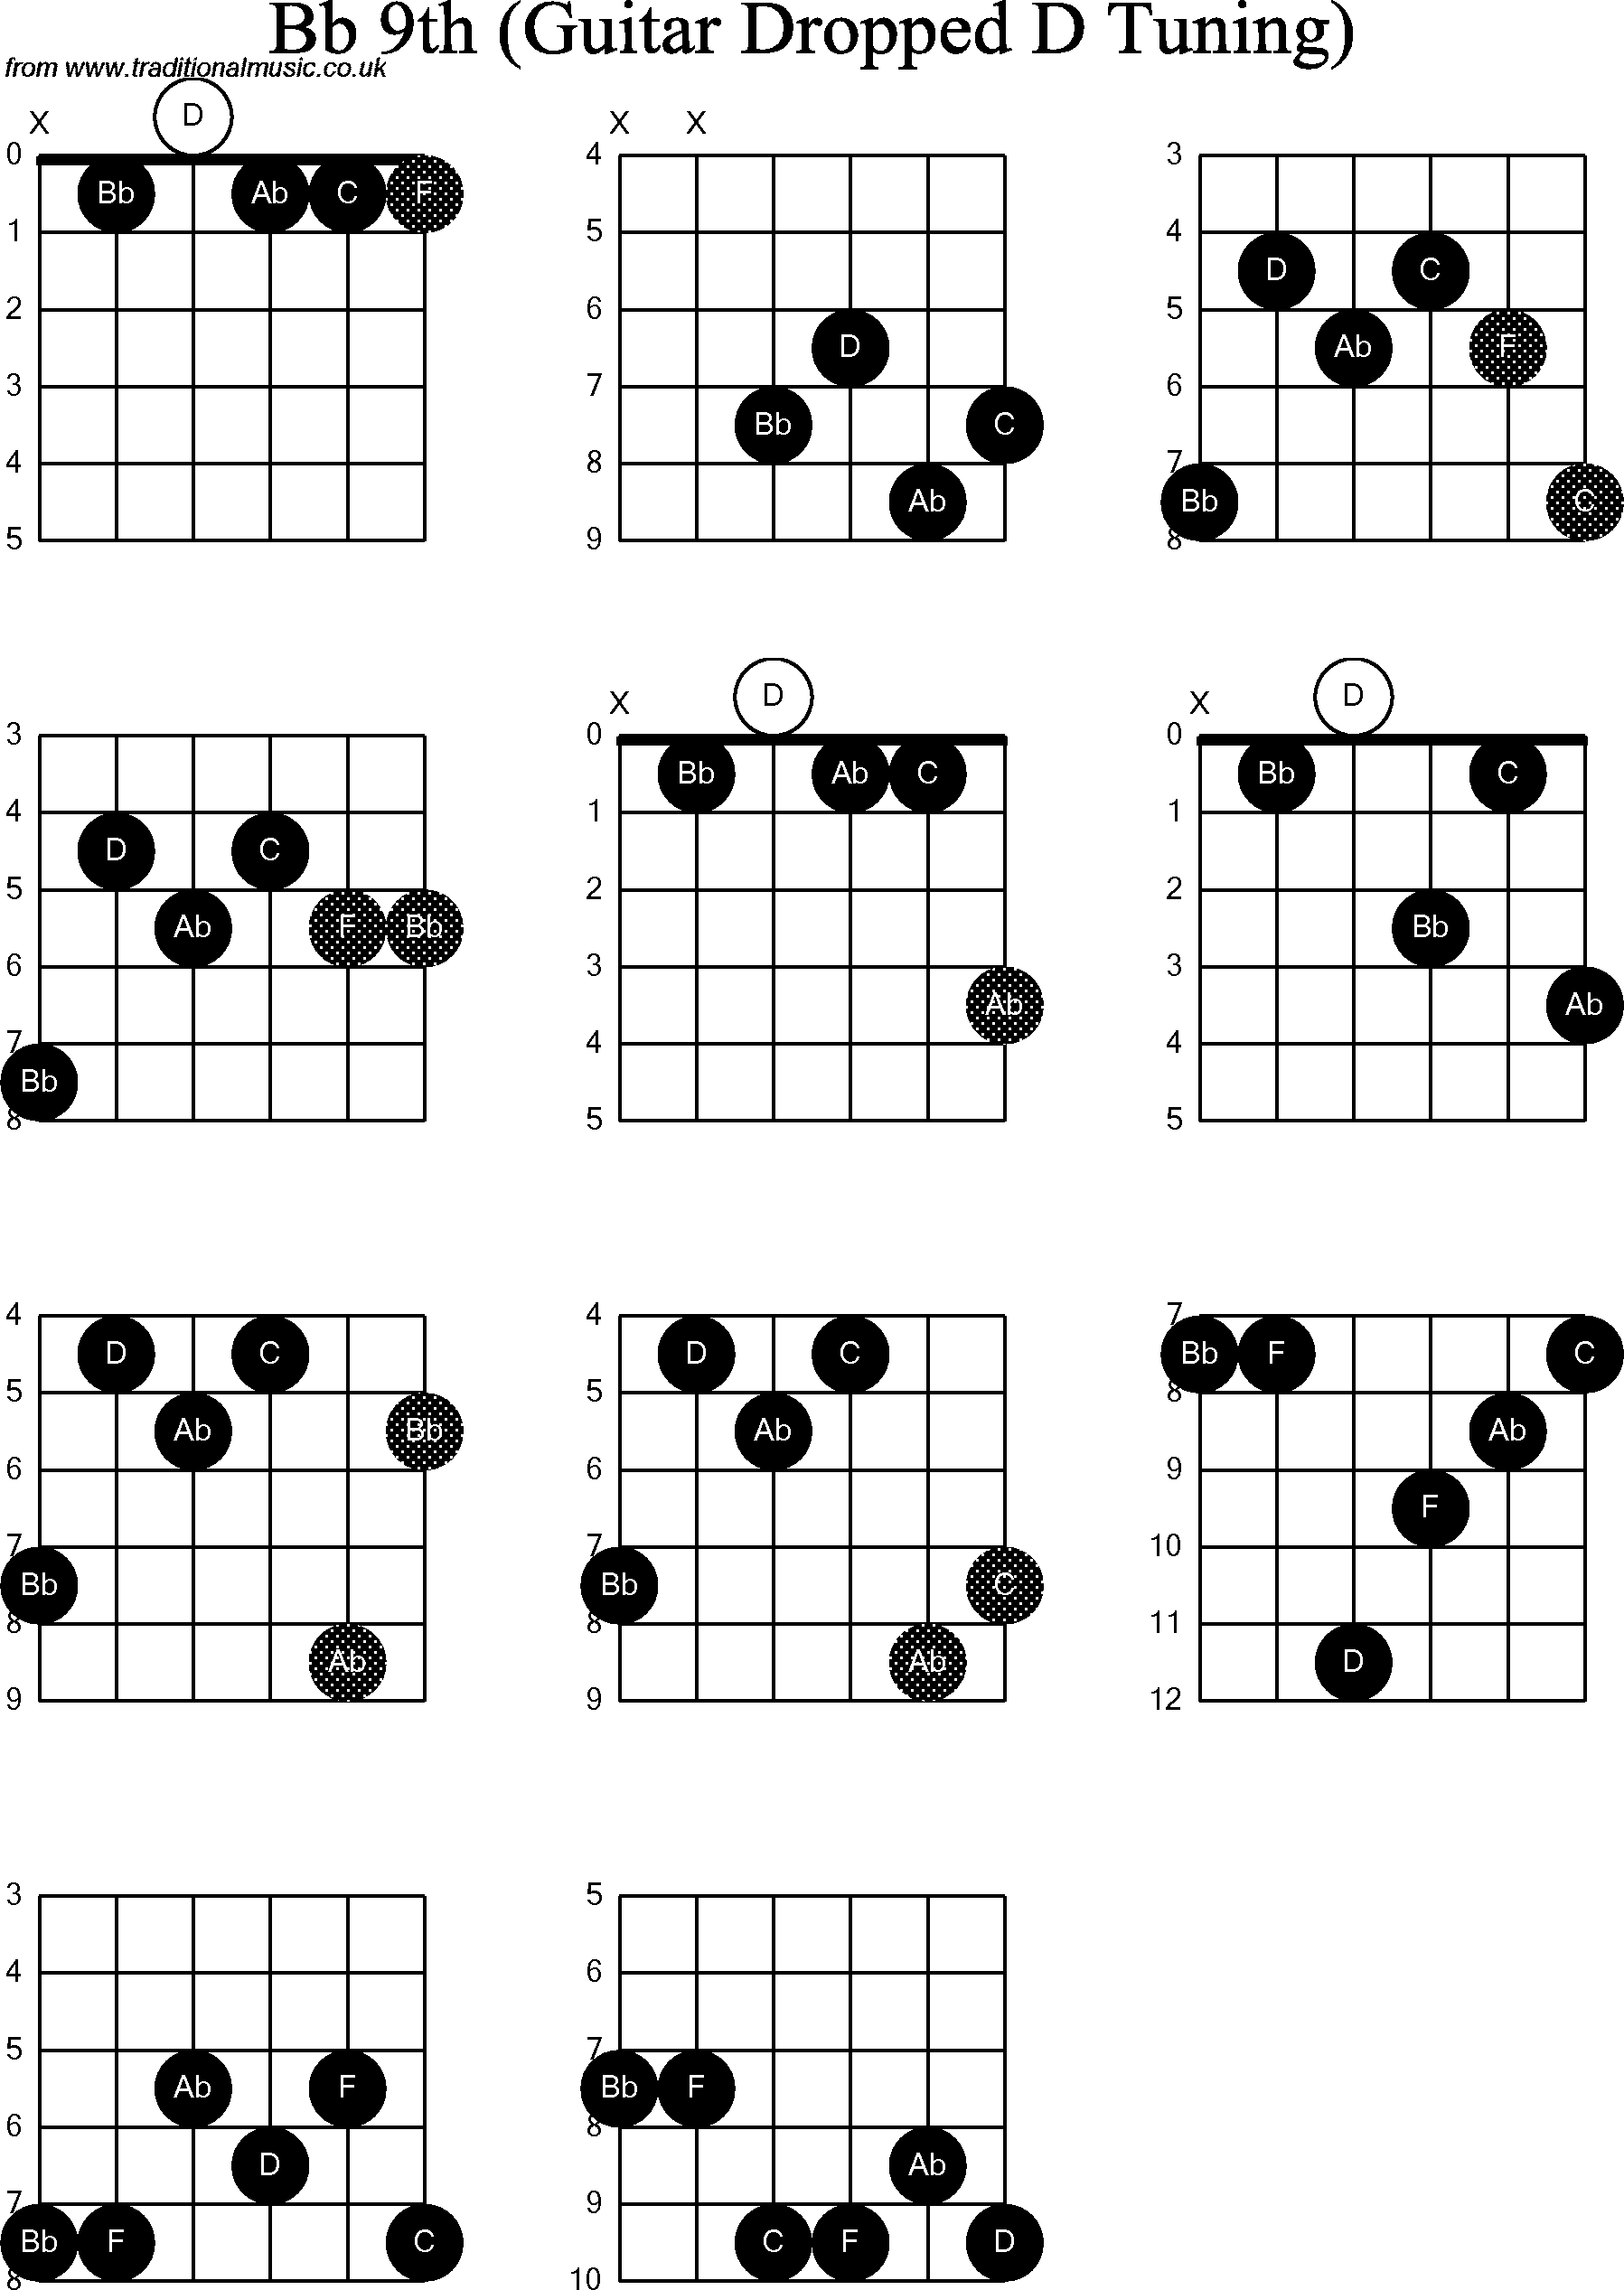 Chord Diagrams For Dropped D Guitardadgbe Bb9th